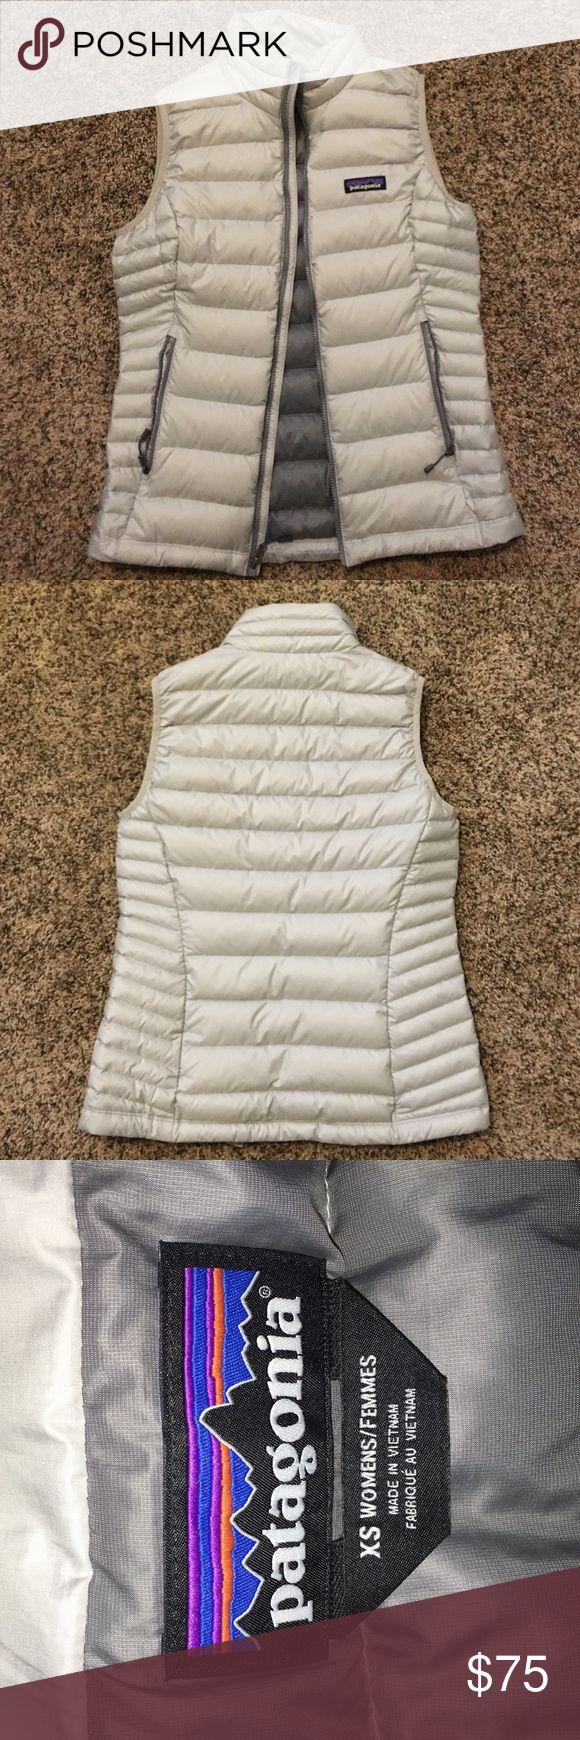 Patagonia down sweater vest Silvery/white women's xs. This was worn once because it was too small and I did not save the gift receipt. Open to trades for a bigger size! Patagonia Jackets & Coats Vests